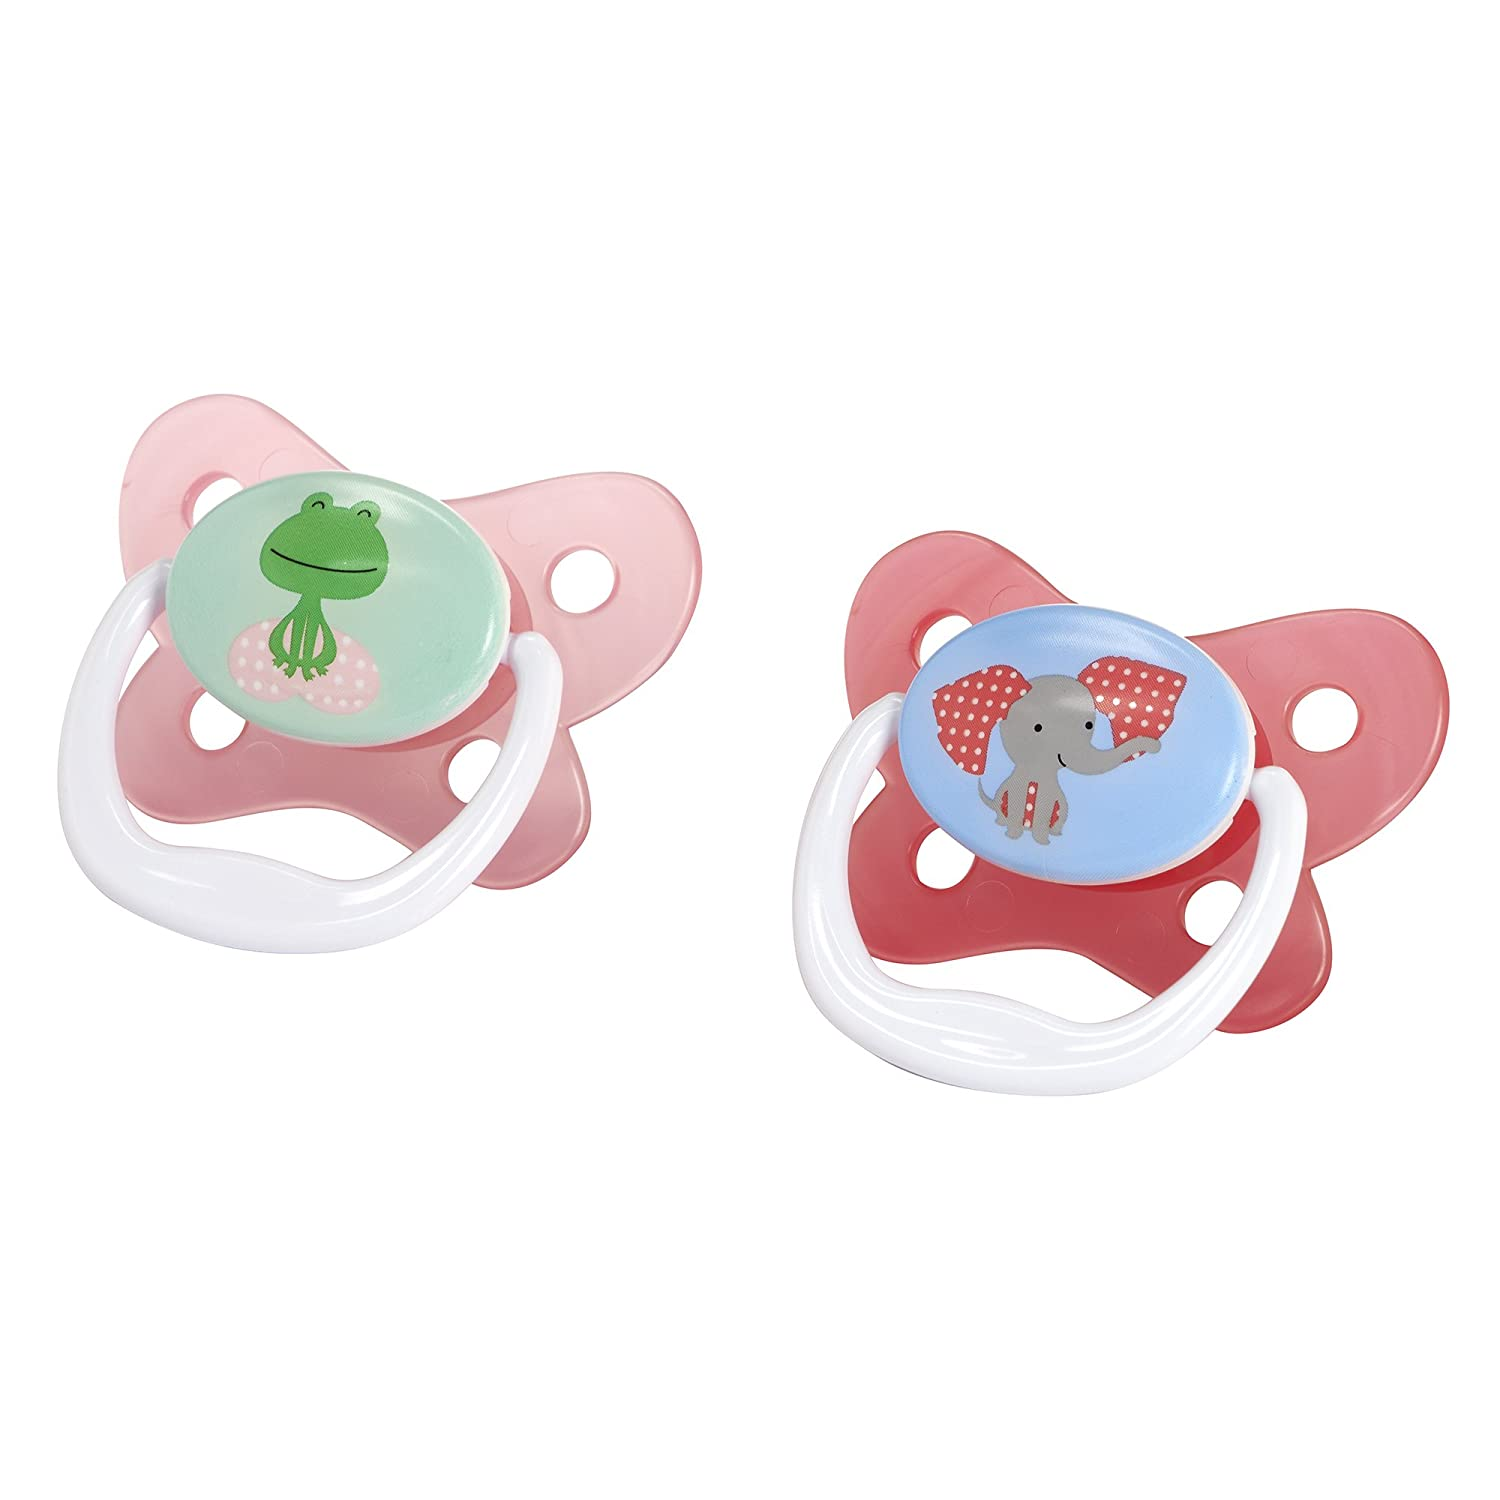 Dr. Browns Prevent Contour Pacifier, Stage 2 (6-12m), Polka Dots Pink, 2-Pack